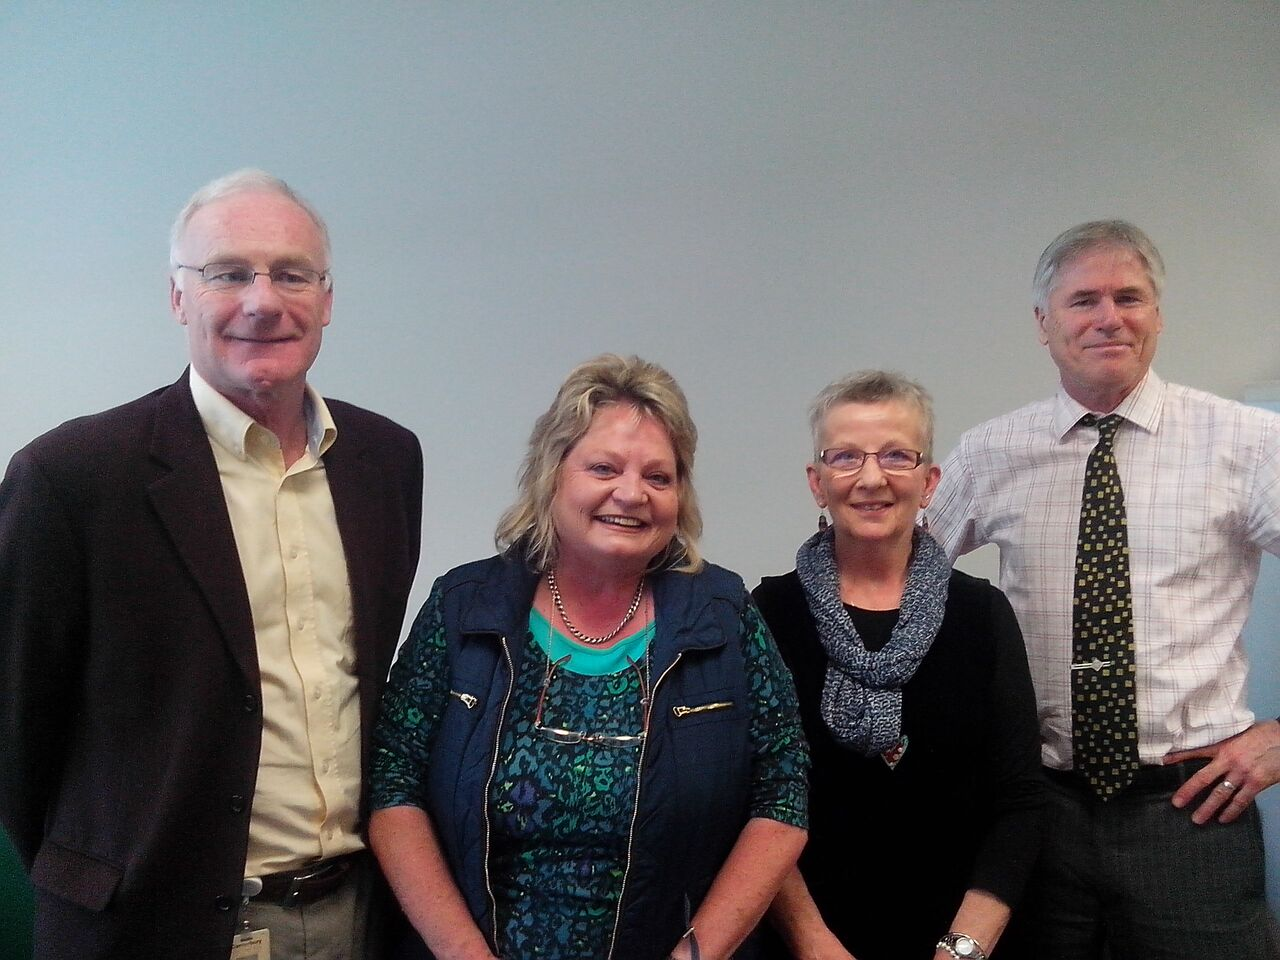 The HD Combined clinic team, left to right : Assoc.Prof Sandy McLeod, Maggie Jury, Marnie McIvor, Prof. Tim Anderson